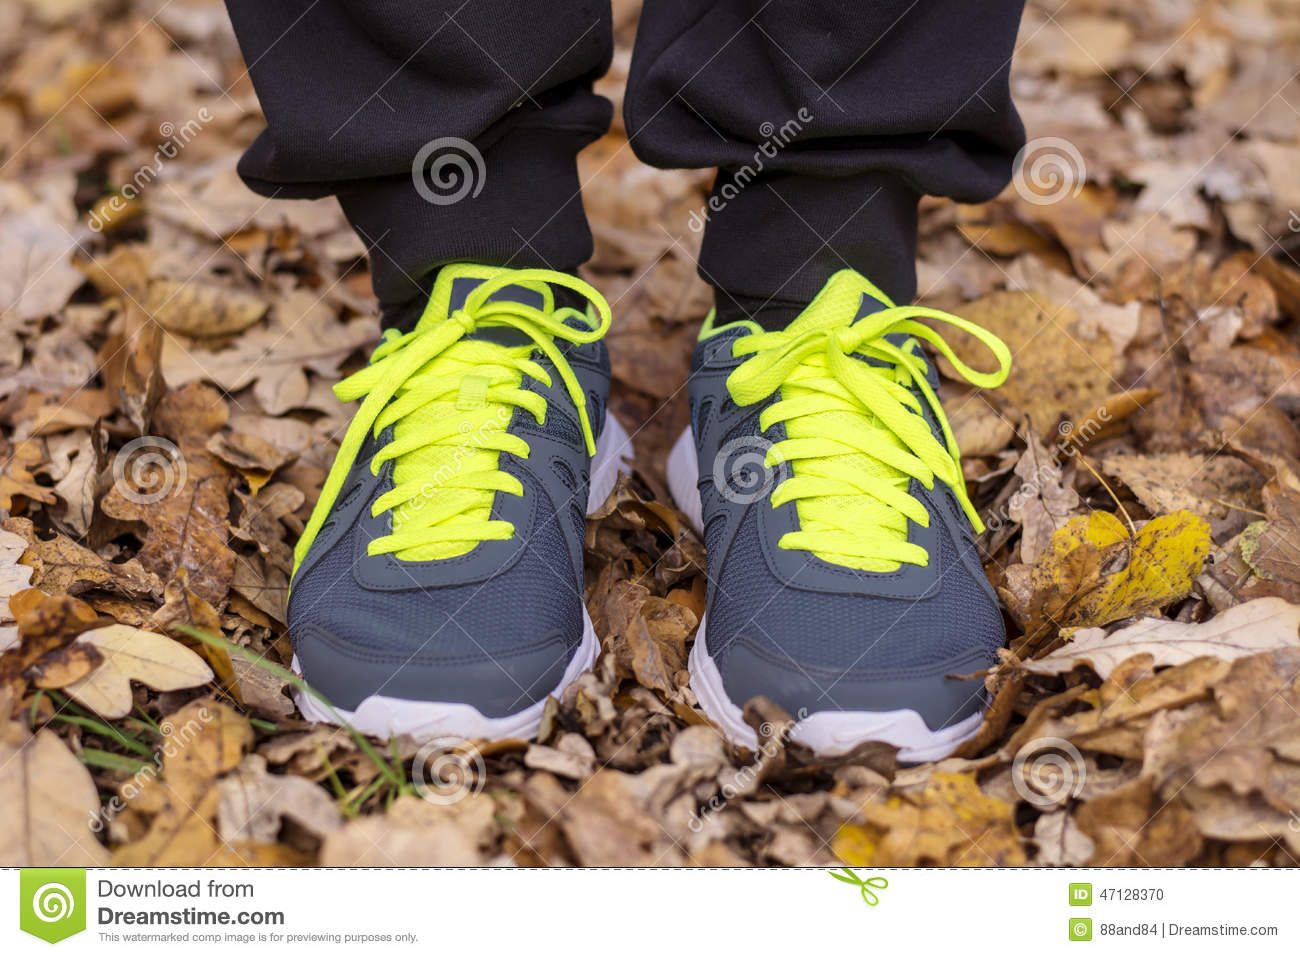 Man with sneakers Standing in dry autumn leaves